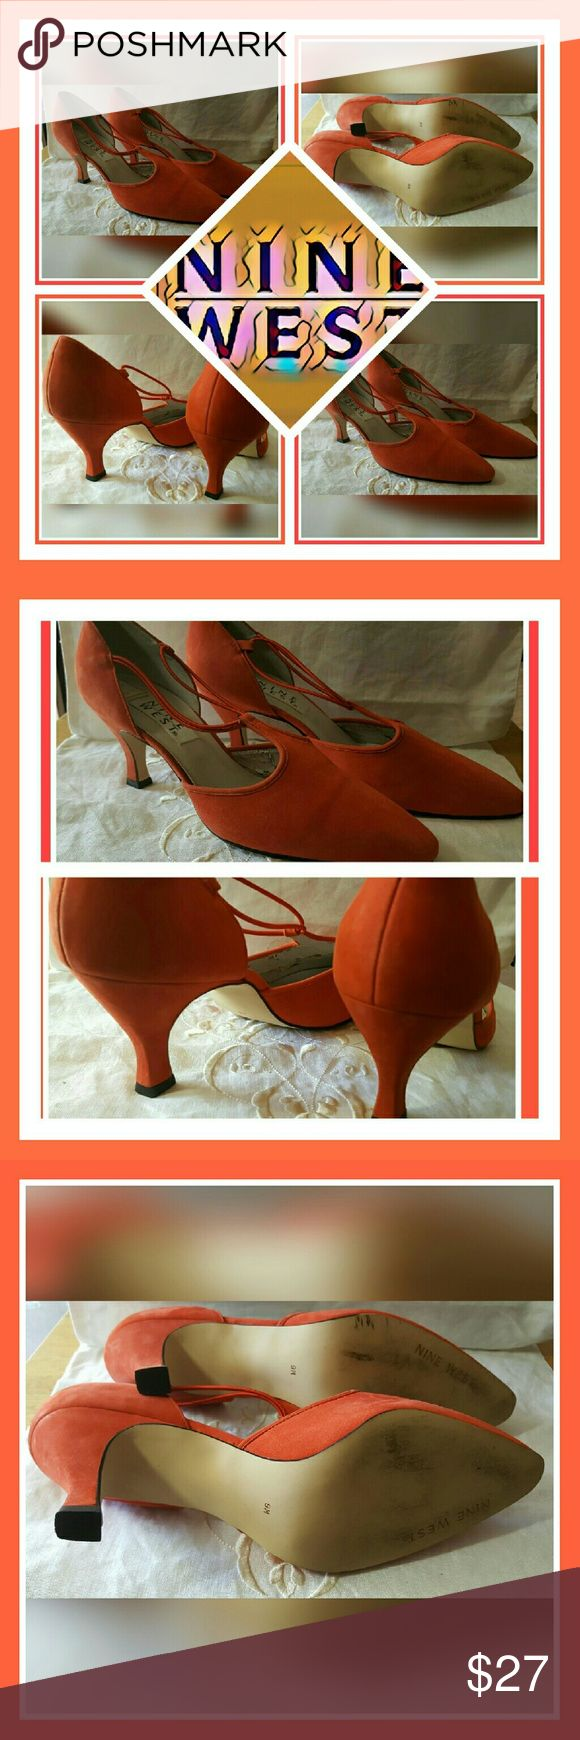 "NINE WEST ORANGE CLASSIC PUMP SIZE 9M THESE CLASSIC ORANGE PUMPS FROM NINE WEST HAVE A 3""HEEL. STYLE IS PUMP;WIDTH US MEDIUM  MATERIAL SUEDE PIC 4 SHOWS LINING IS PEELING. SHOE IS IN EUC SIZE 9M Nine West Shoes Heels"